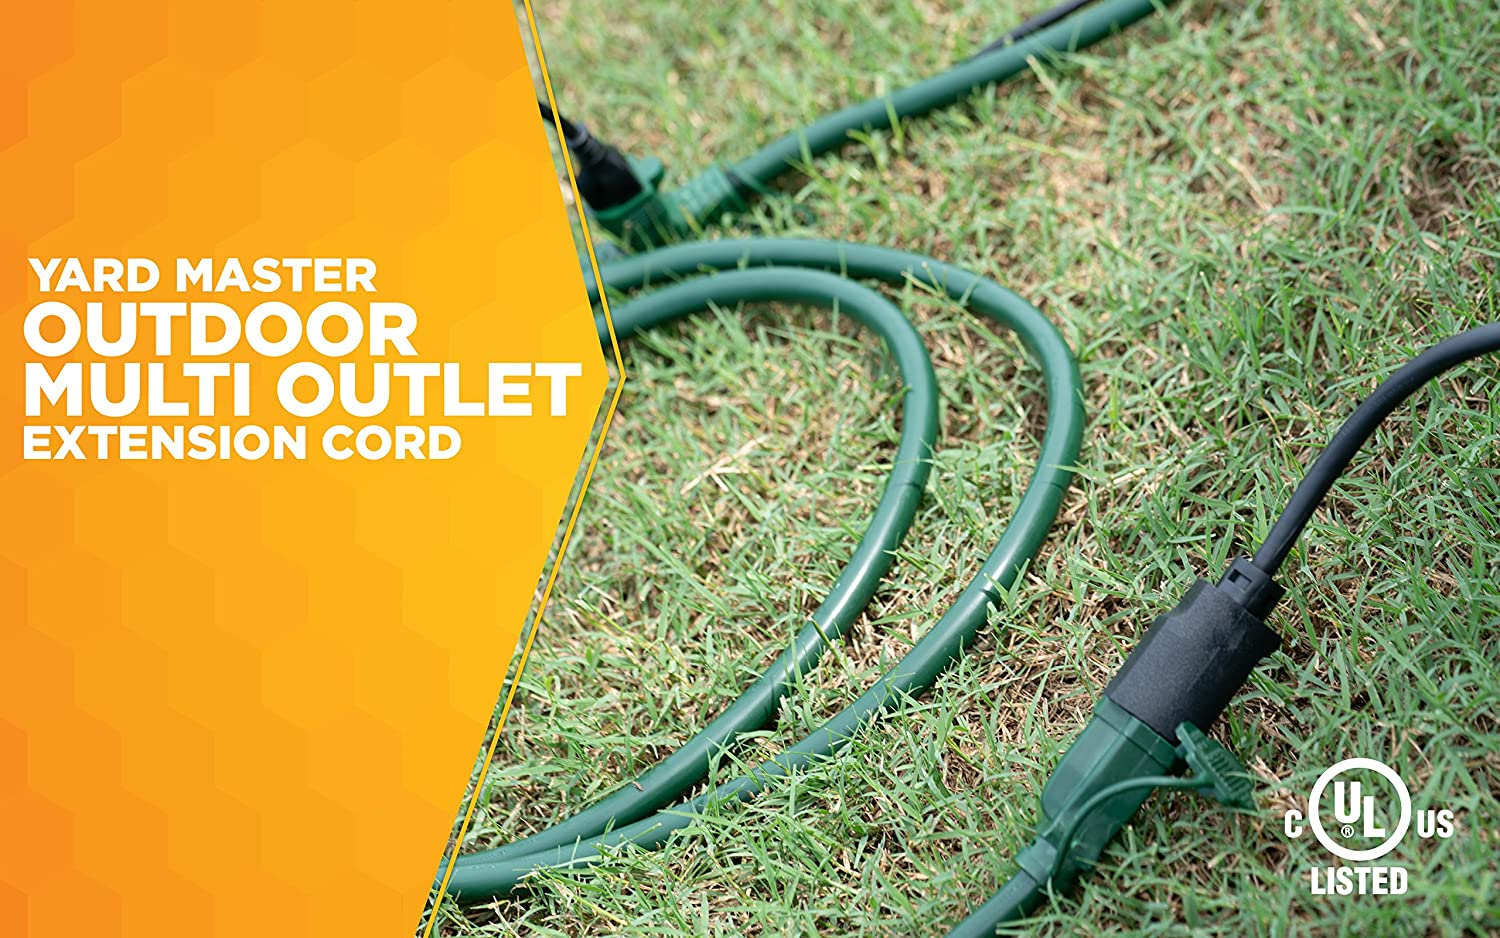 Woods 3030 Yard Master Outdoor Extension Cord With Evenly Spaced Wiring Outside Electrical Box Plugs And 3 Outlets 25 Ft Green